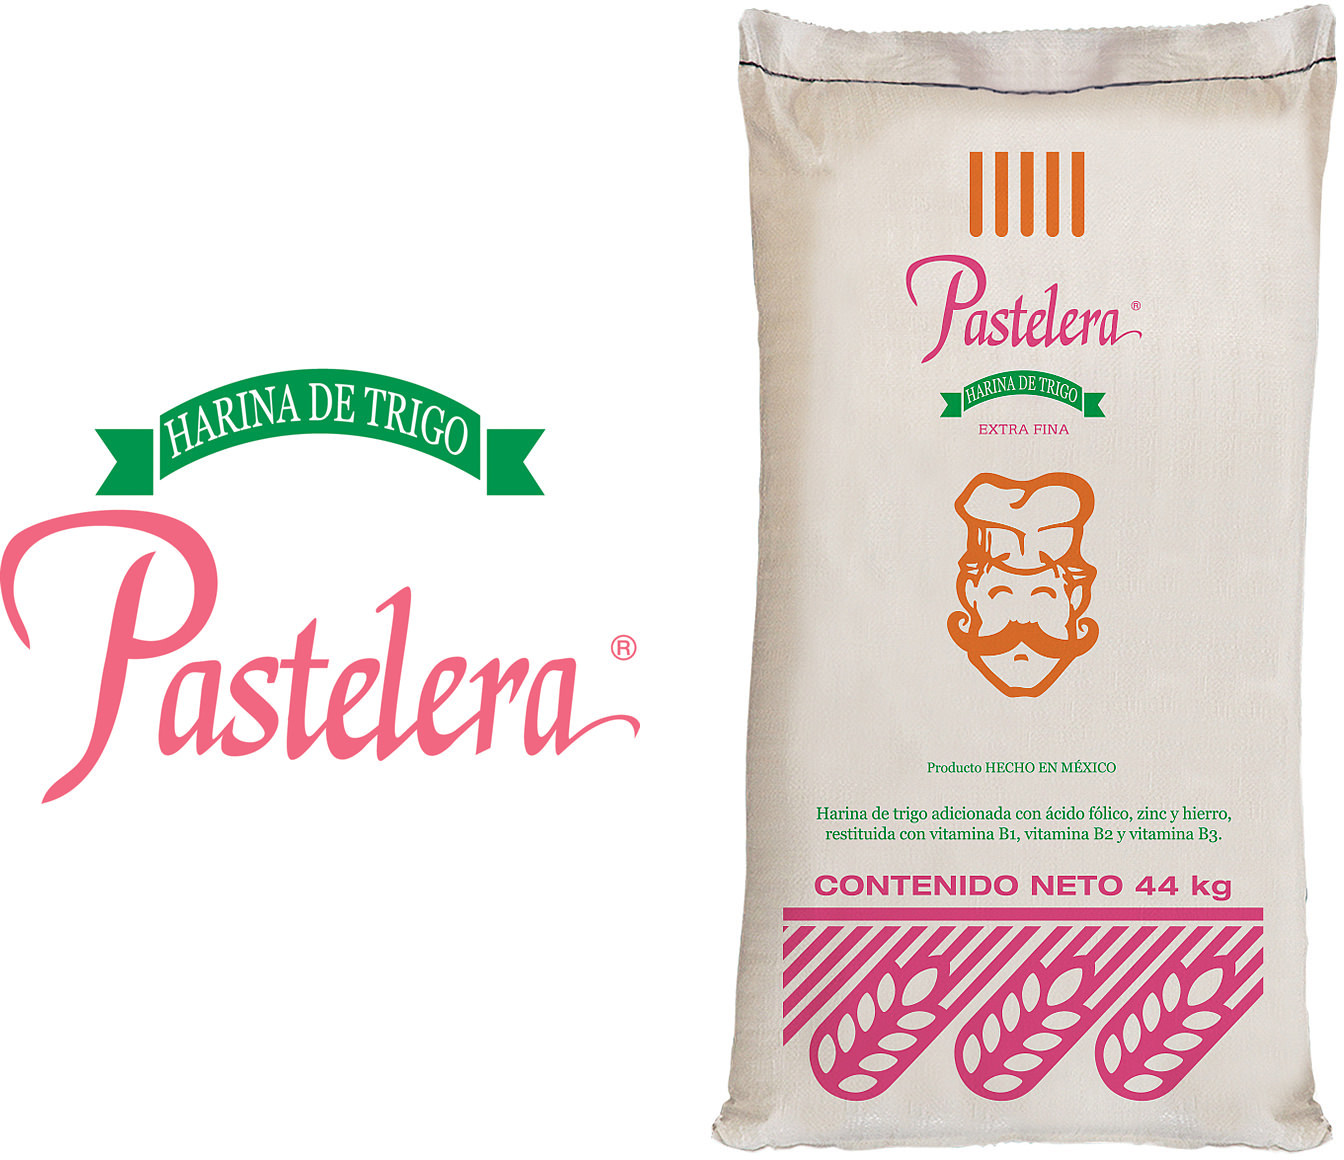 Pastelera flour for sponge cakes and pastries.